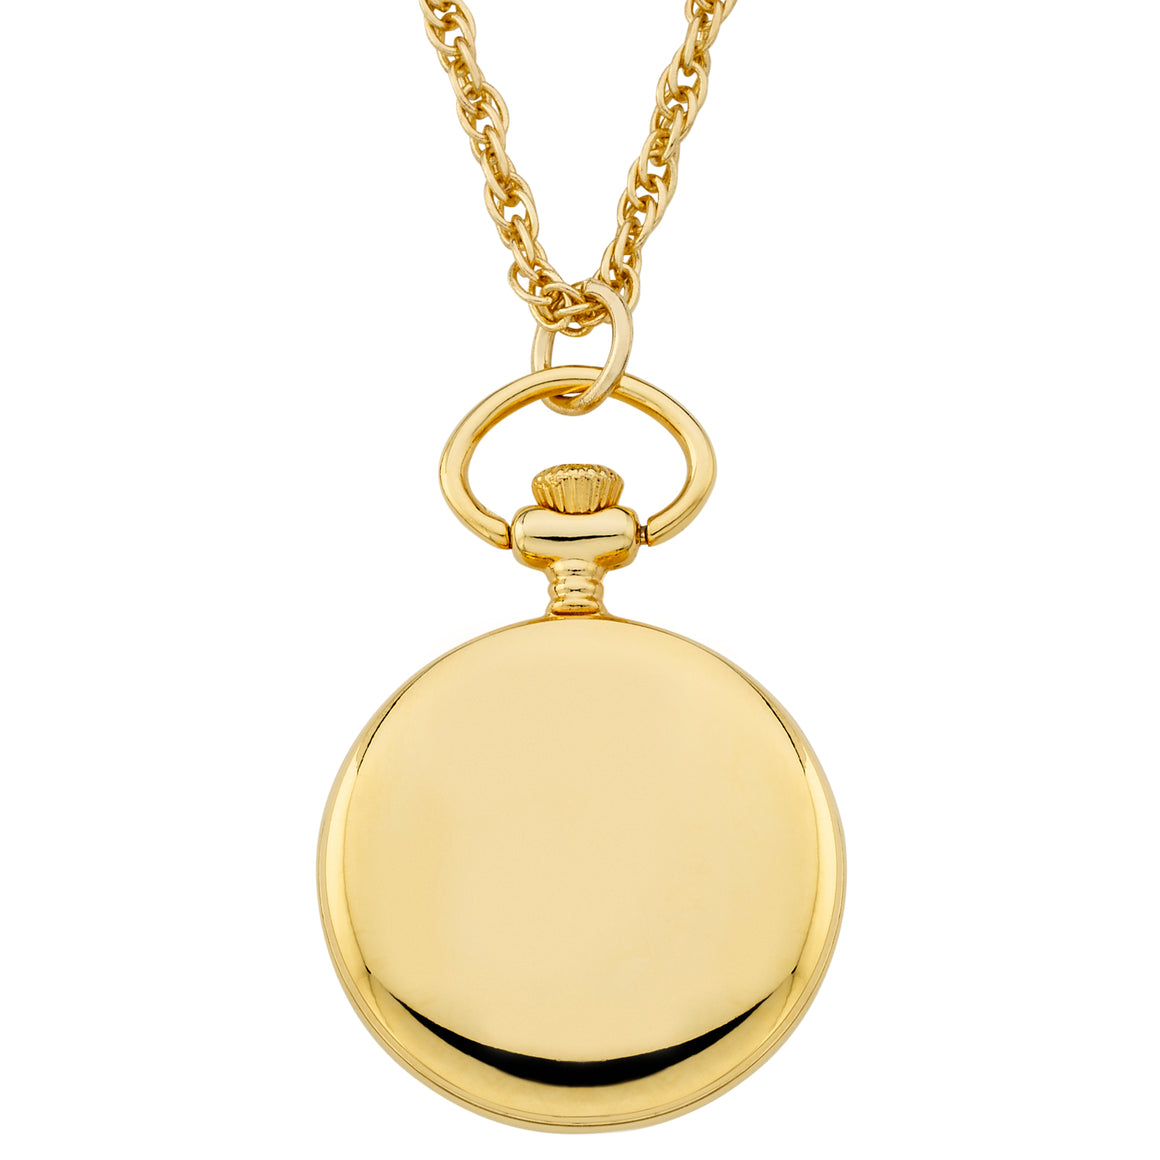 Gotham Women's Gold-Tone Open Face Pendant Watch With Chain # GWC14134GR - Gotham Watch